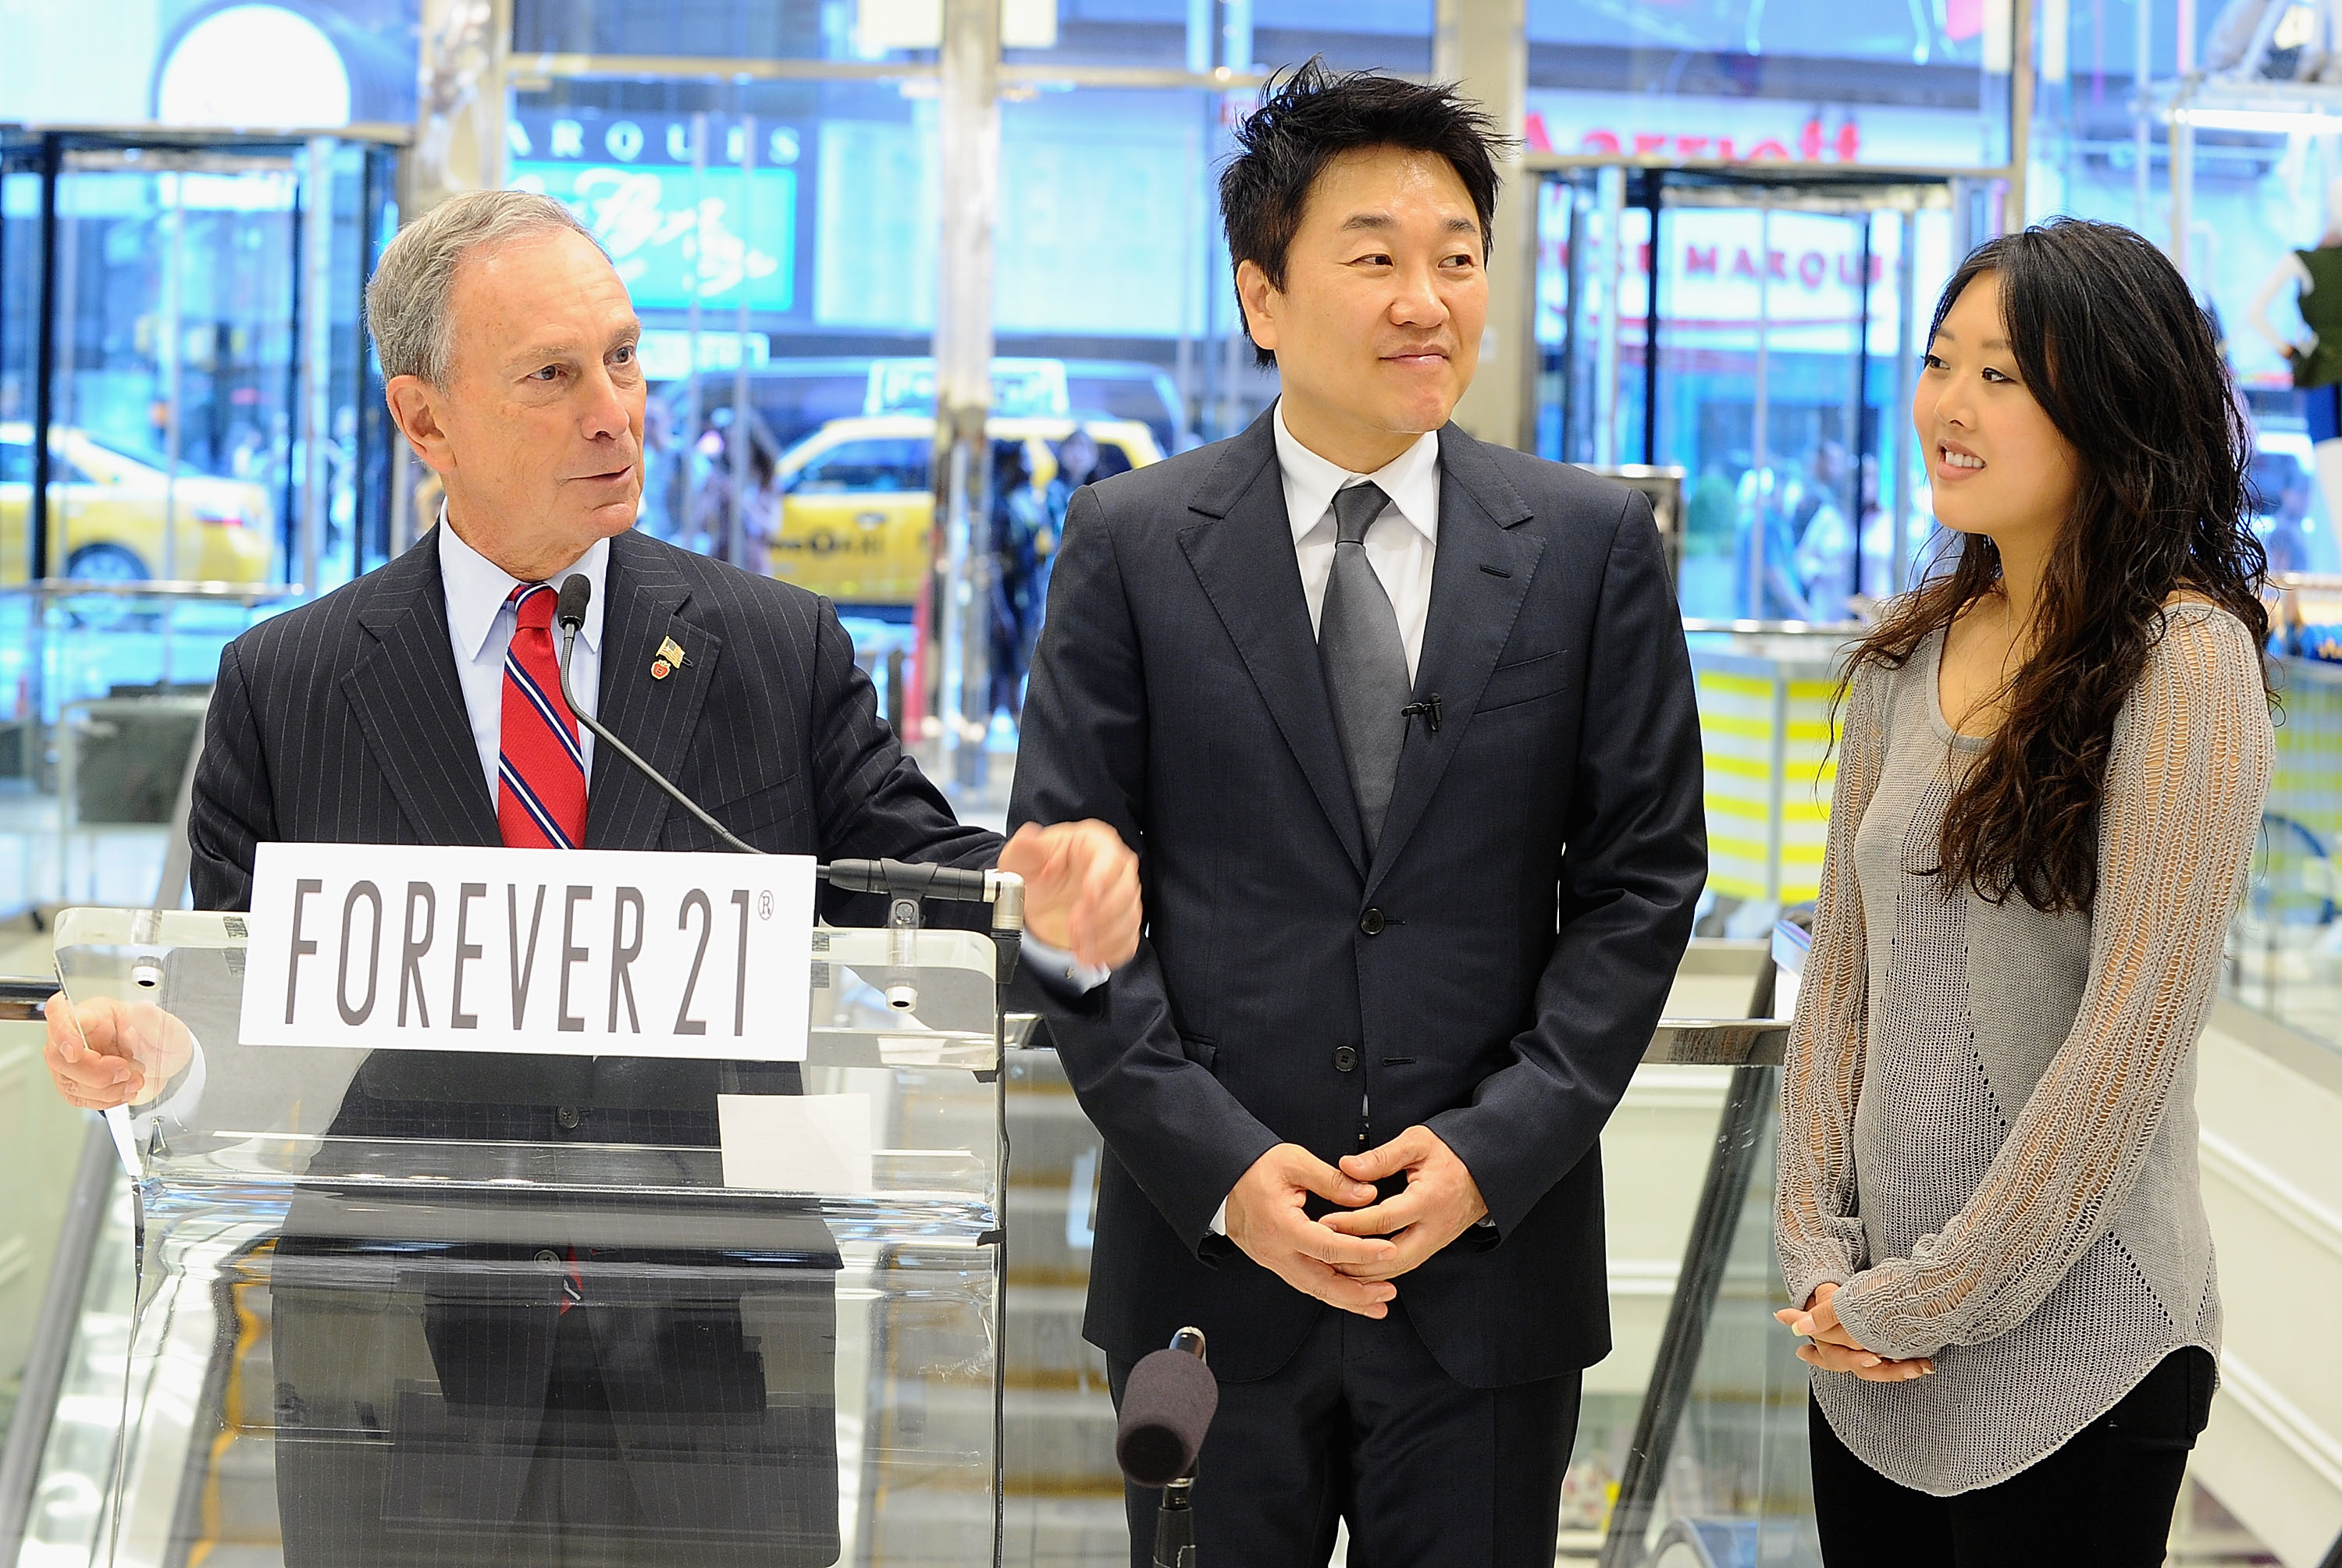 New York City Mayor Michael Bloomberg, Don Chang,CEO of Forever 21 and Linda Chang,senior marketing manager of Forever 21 visit the Forever 21 new Times Square location at Forever 21 Times Square Flagship Store on June 24, 2010 in New York City. (Photo by Jamie McCarthy/Getty Images for Forever 21)